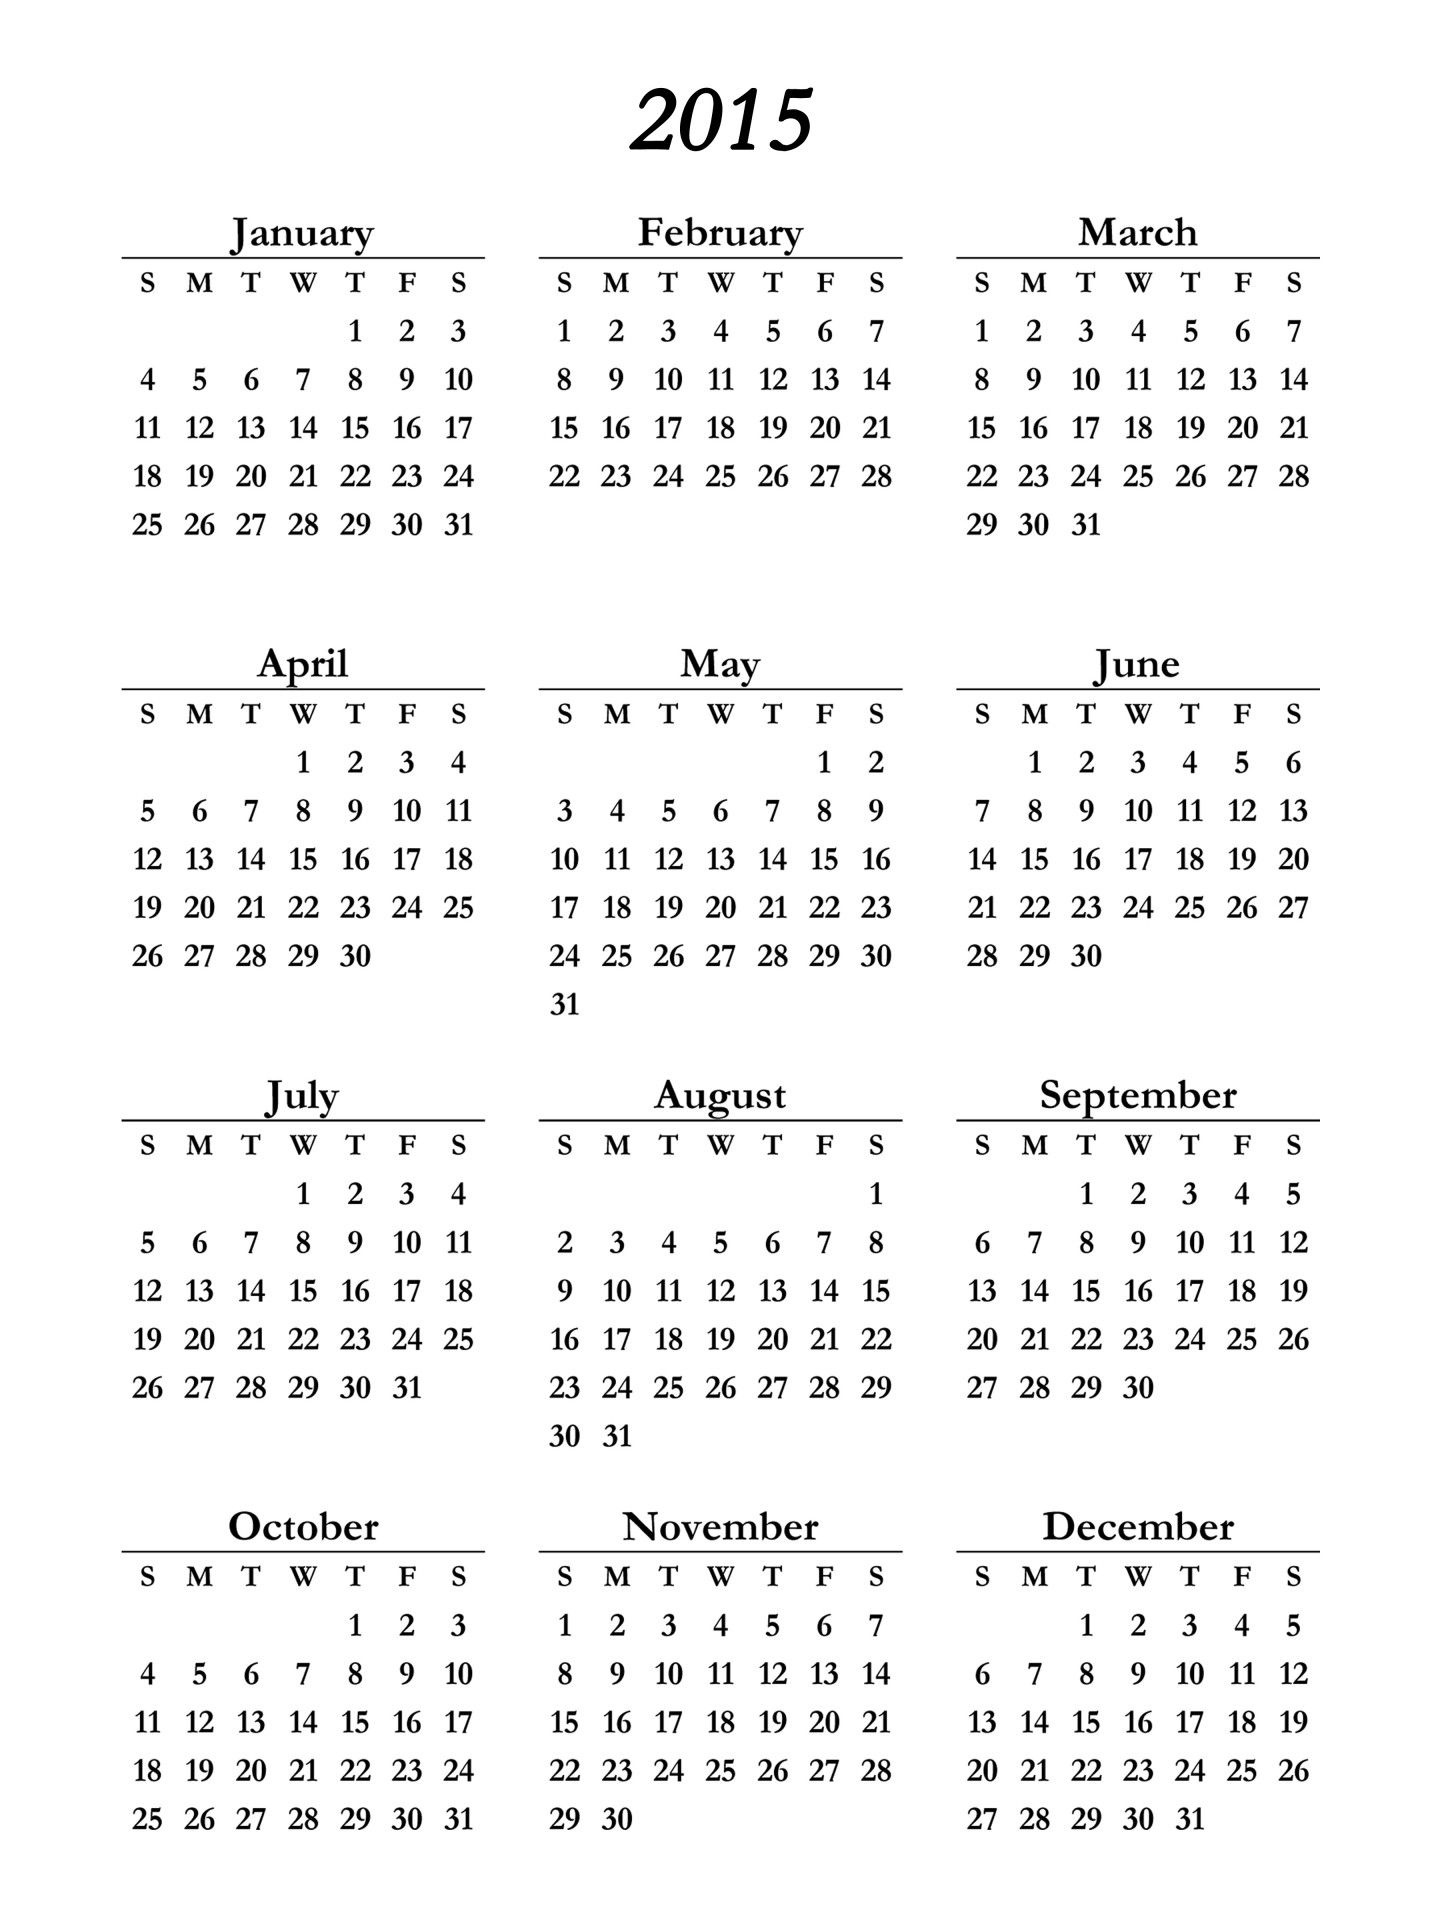 2015 Calendar Printable - Free Large Images | 2 | Pinterest  2014 Calendar Printable Yearly Calendars